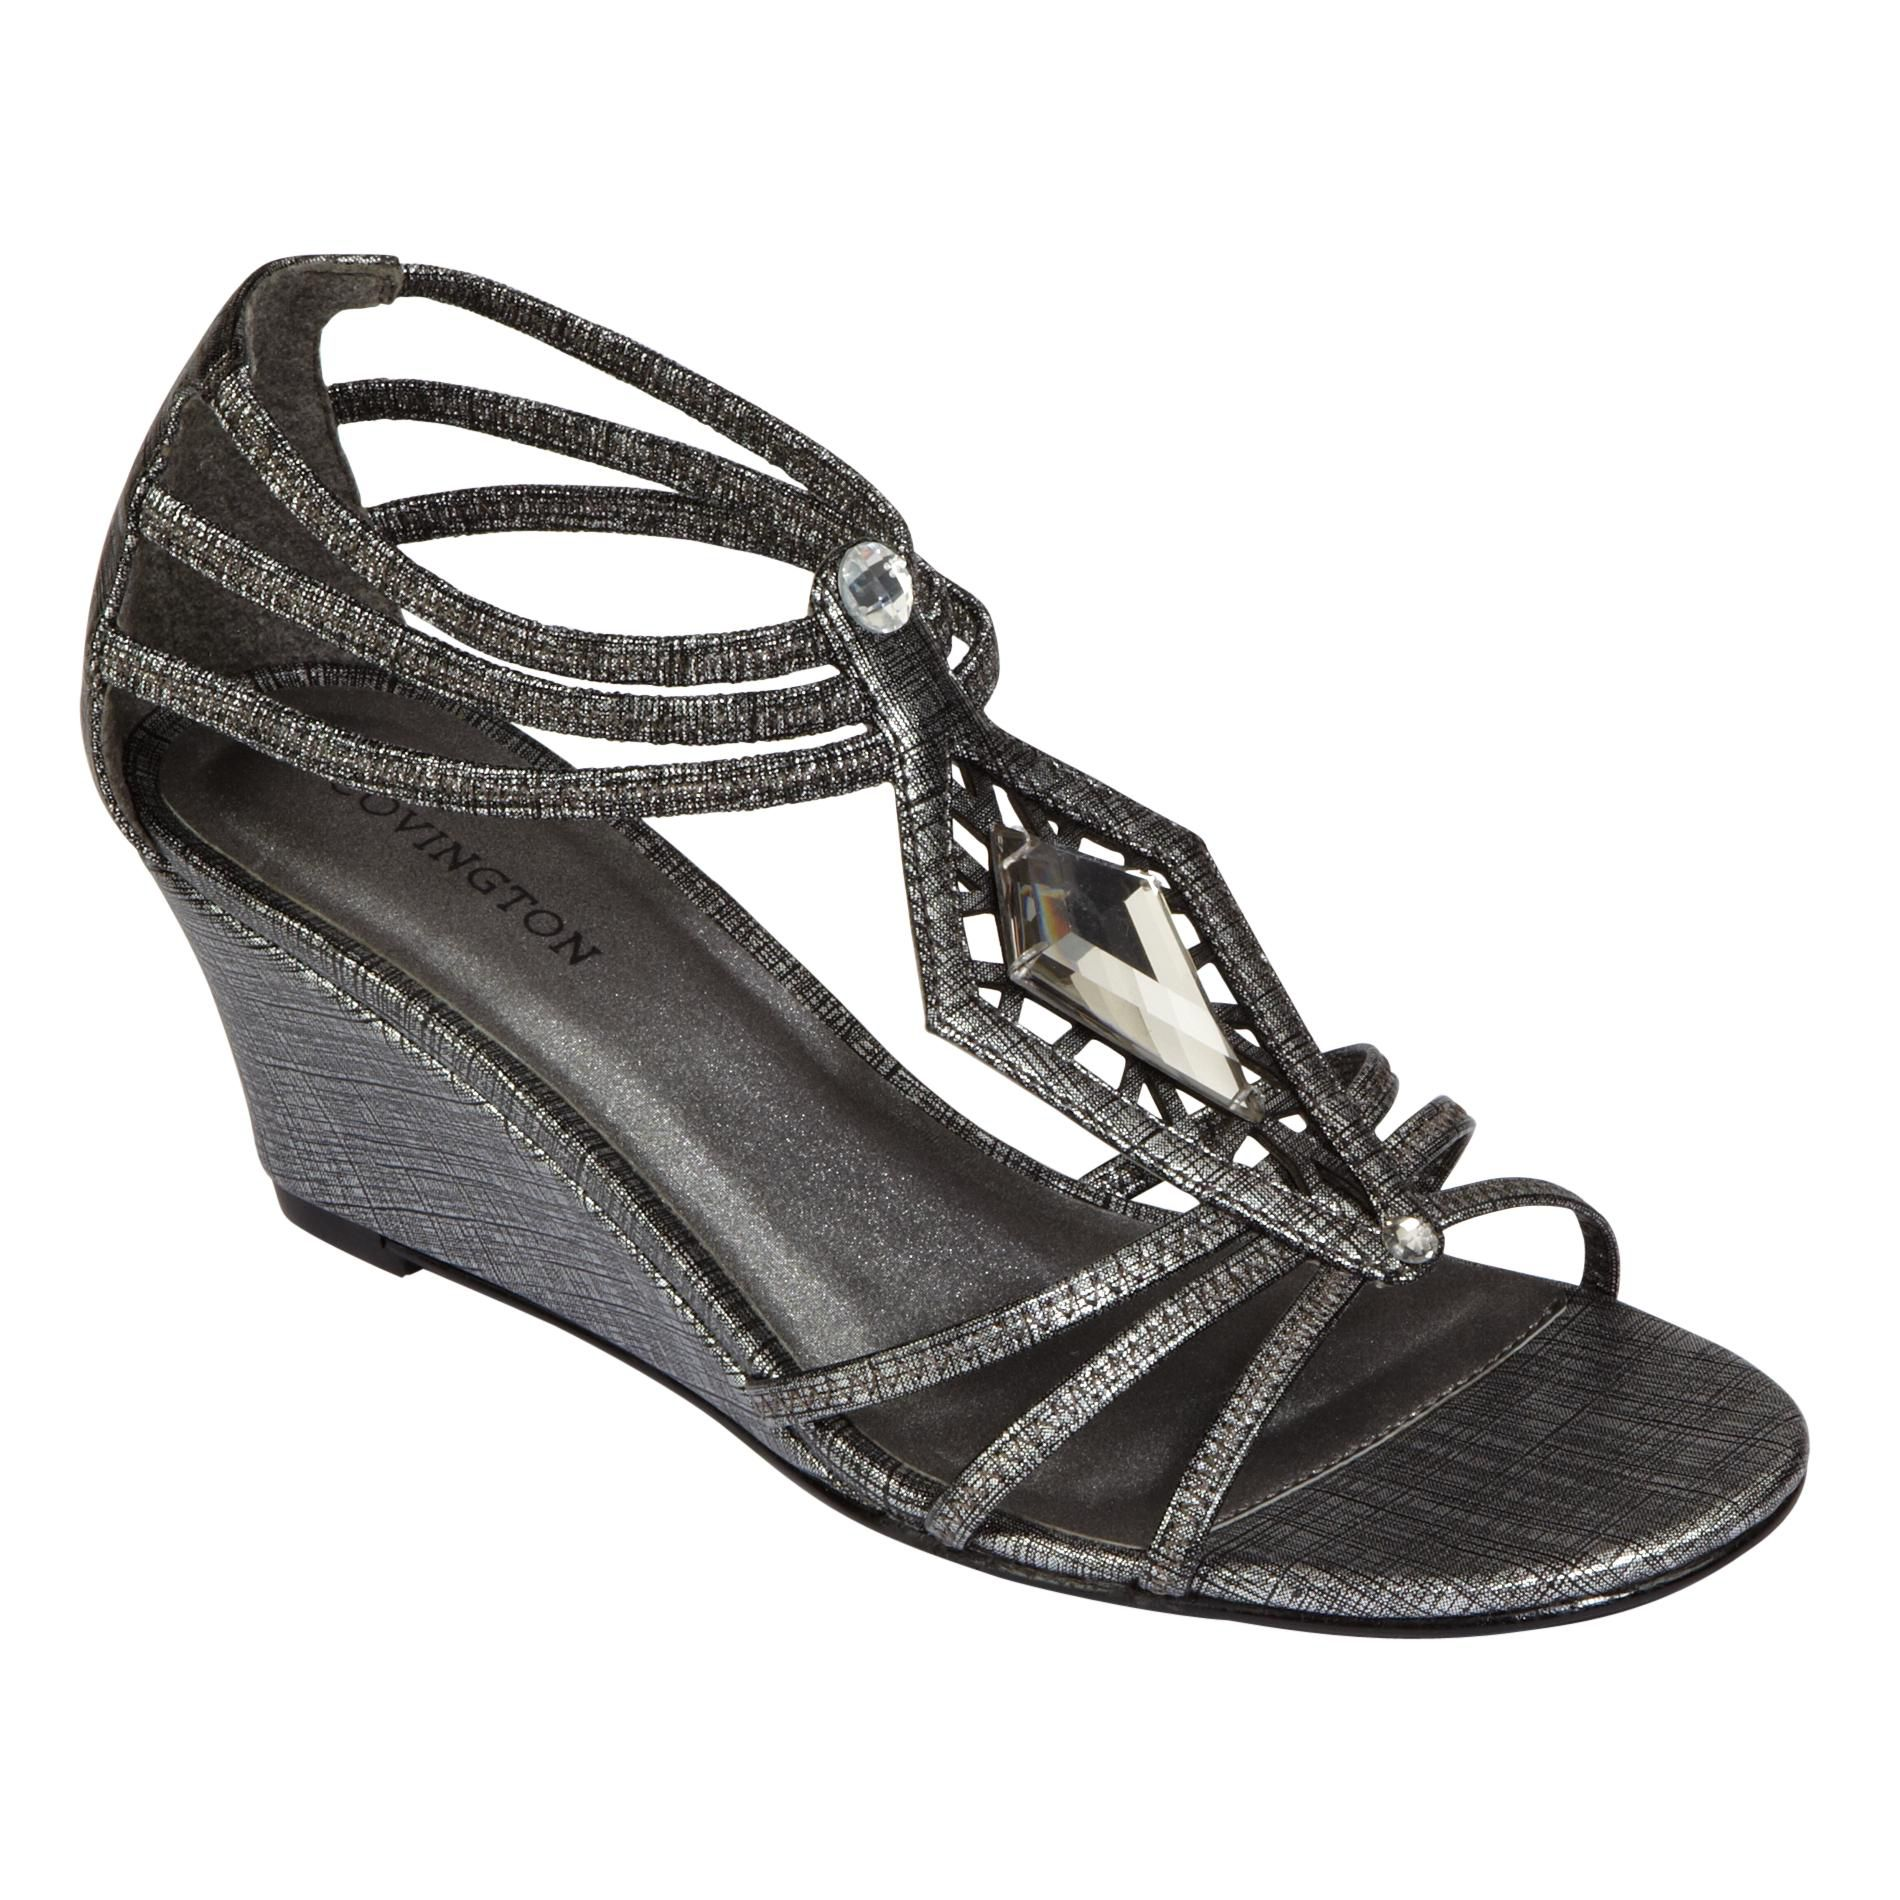 Women's Diamond Sandal - Pewter